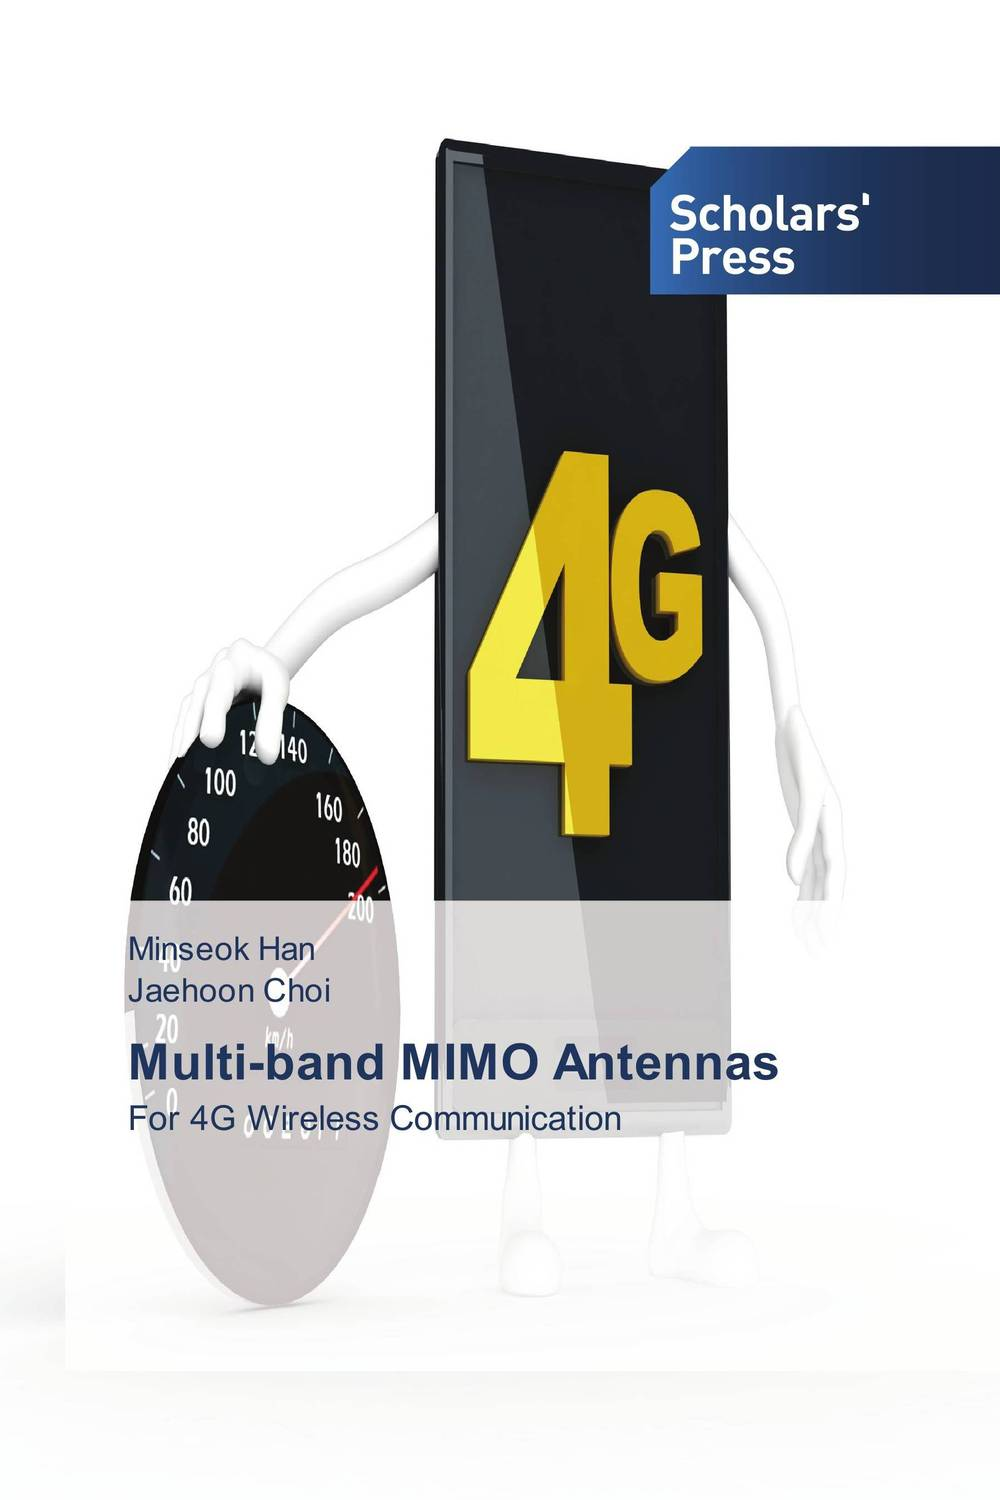 Multi-band MIMO Antennas for their mutual benefit